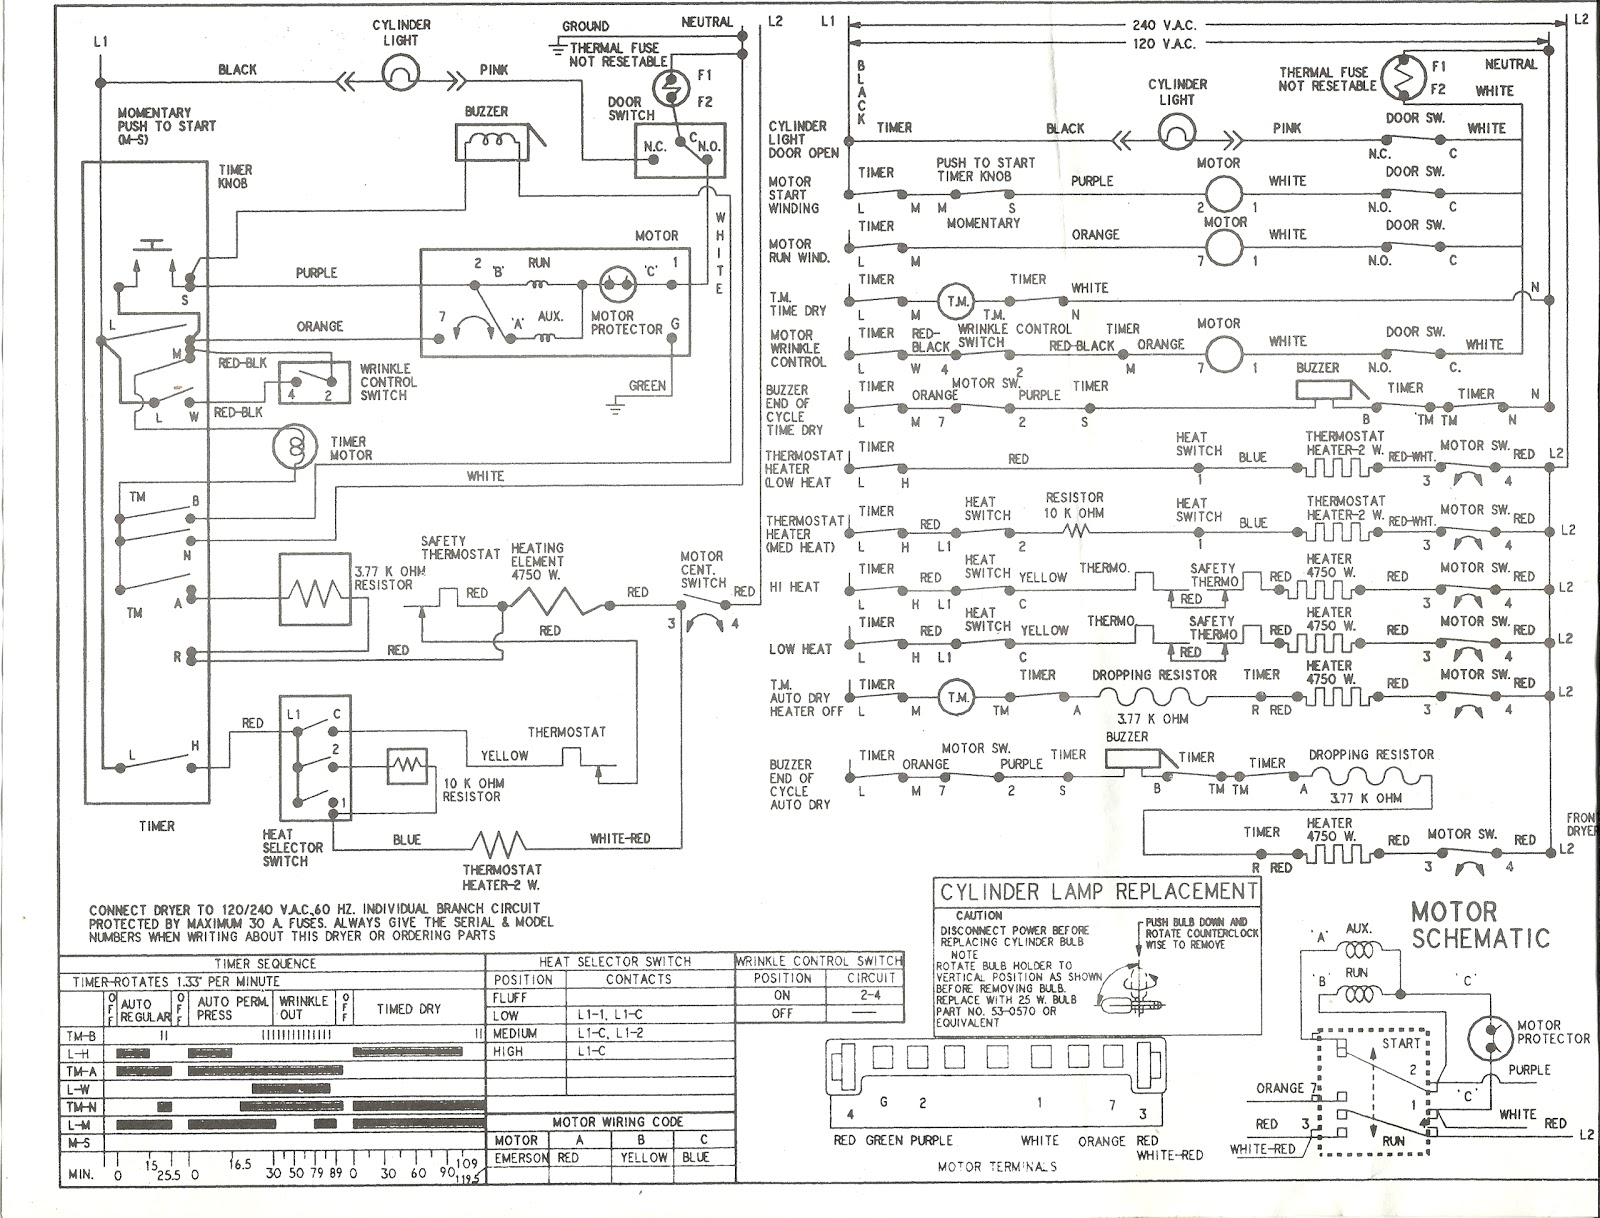 appliance talk kenmore series electric dryer wiring diagram thanks for taking a look at the wiring diagram for kenmore whirlpool electric dryers